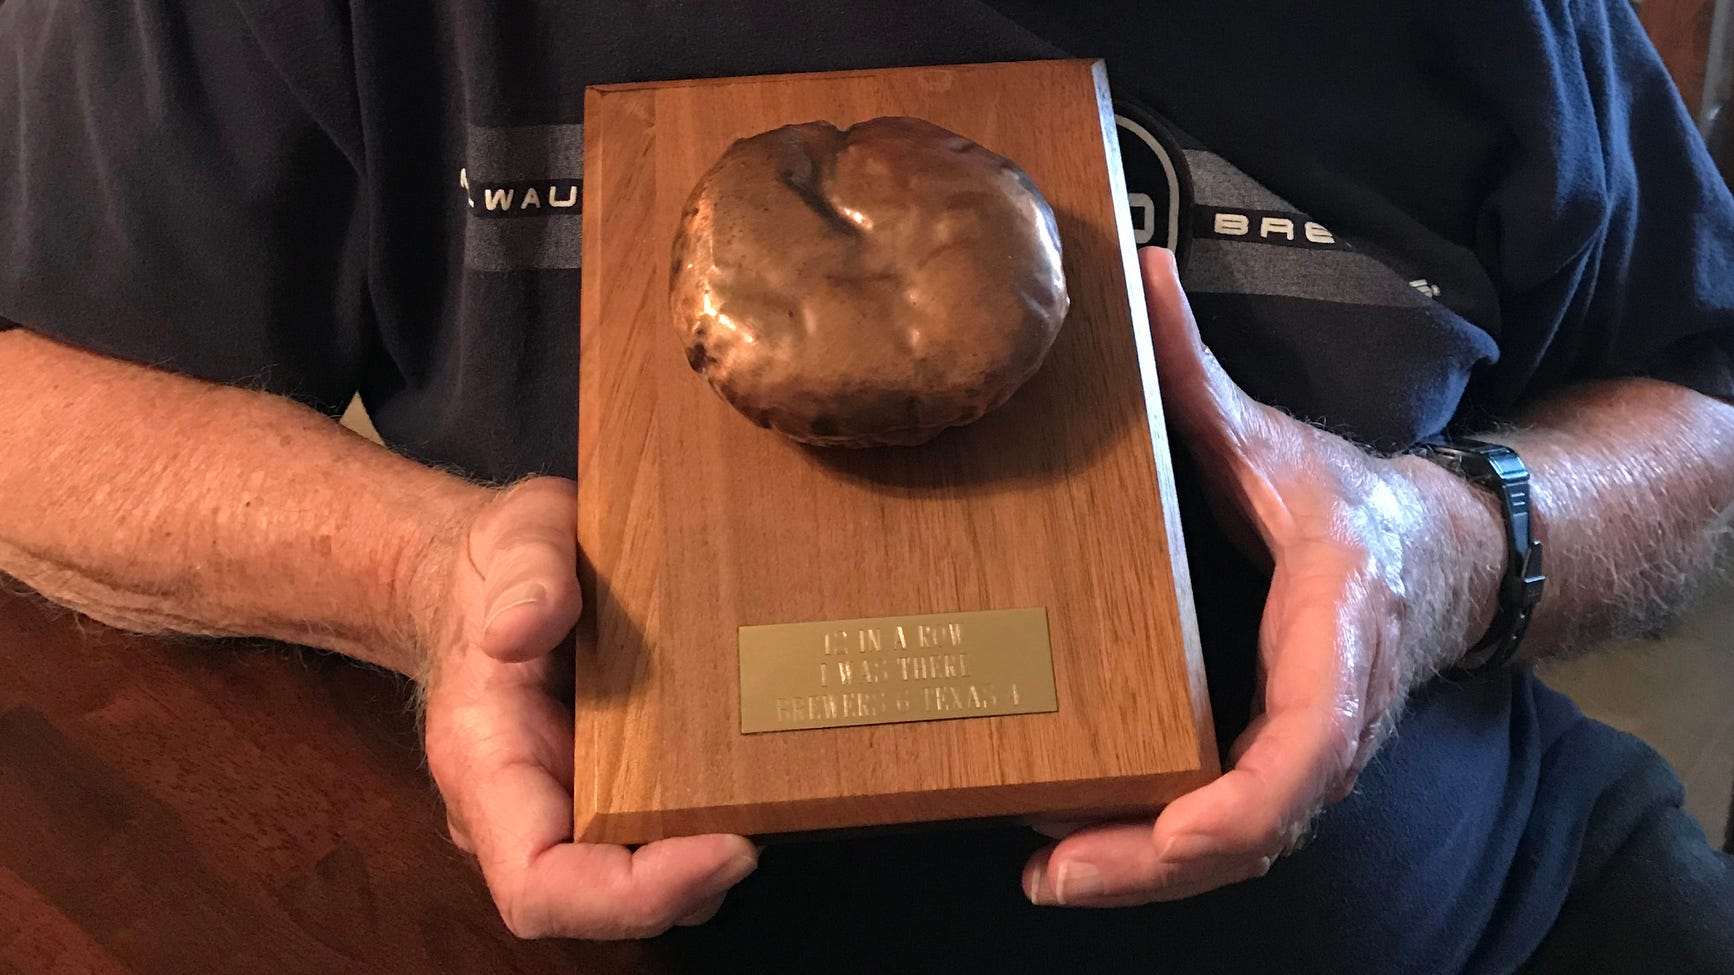 Mark Leaver Sr. holds the bronzed 1987 free George Webb's hamburger his son gave him for Father's Day 31 years ago.